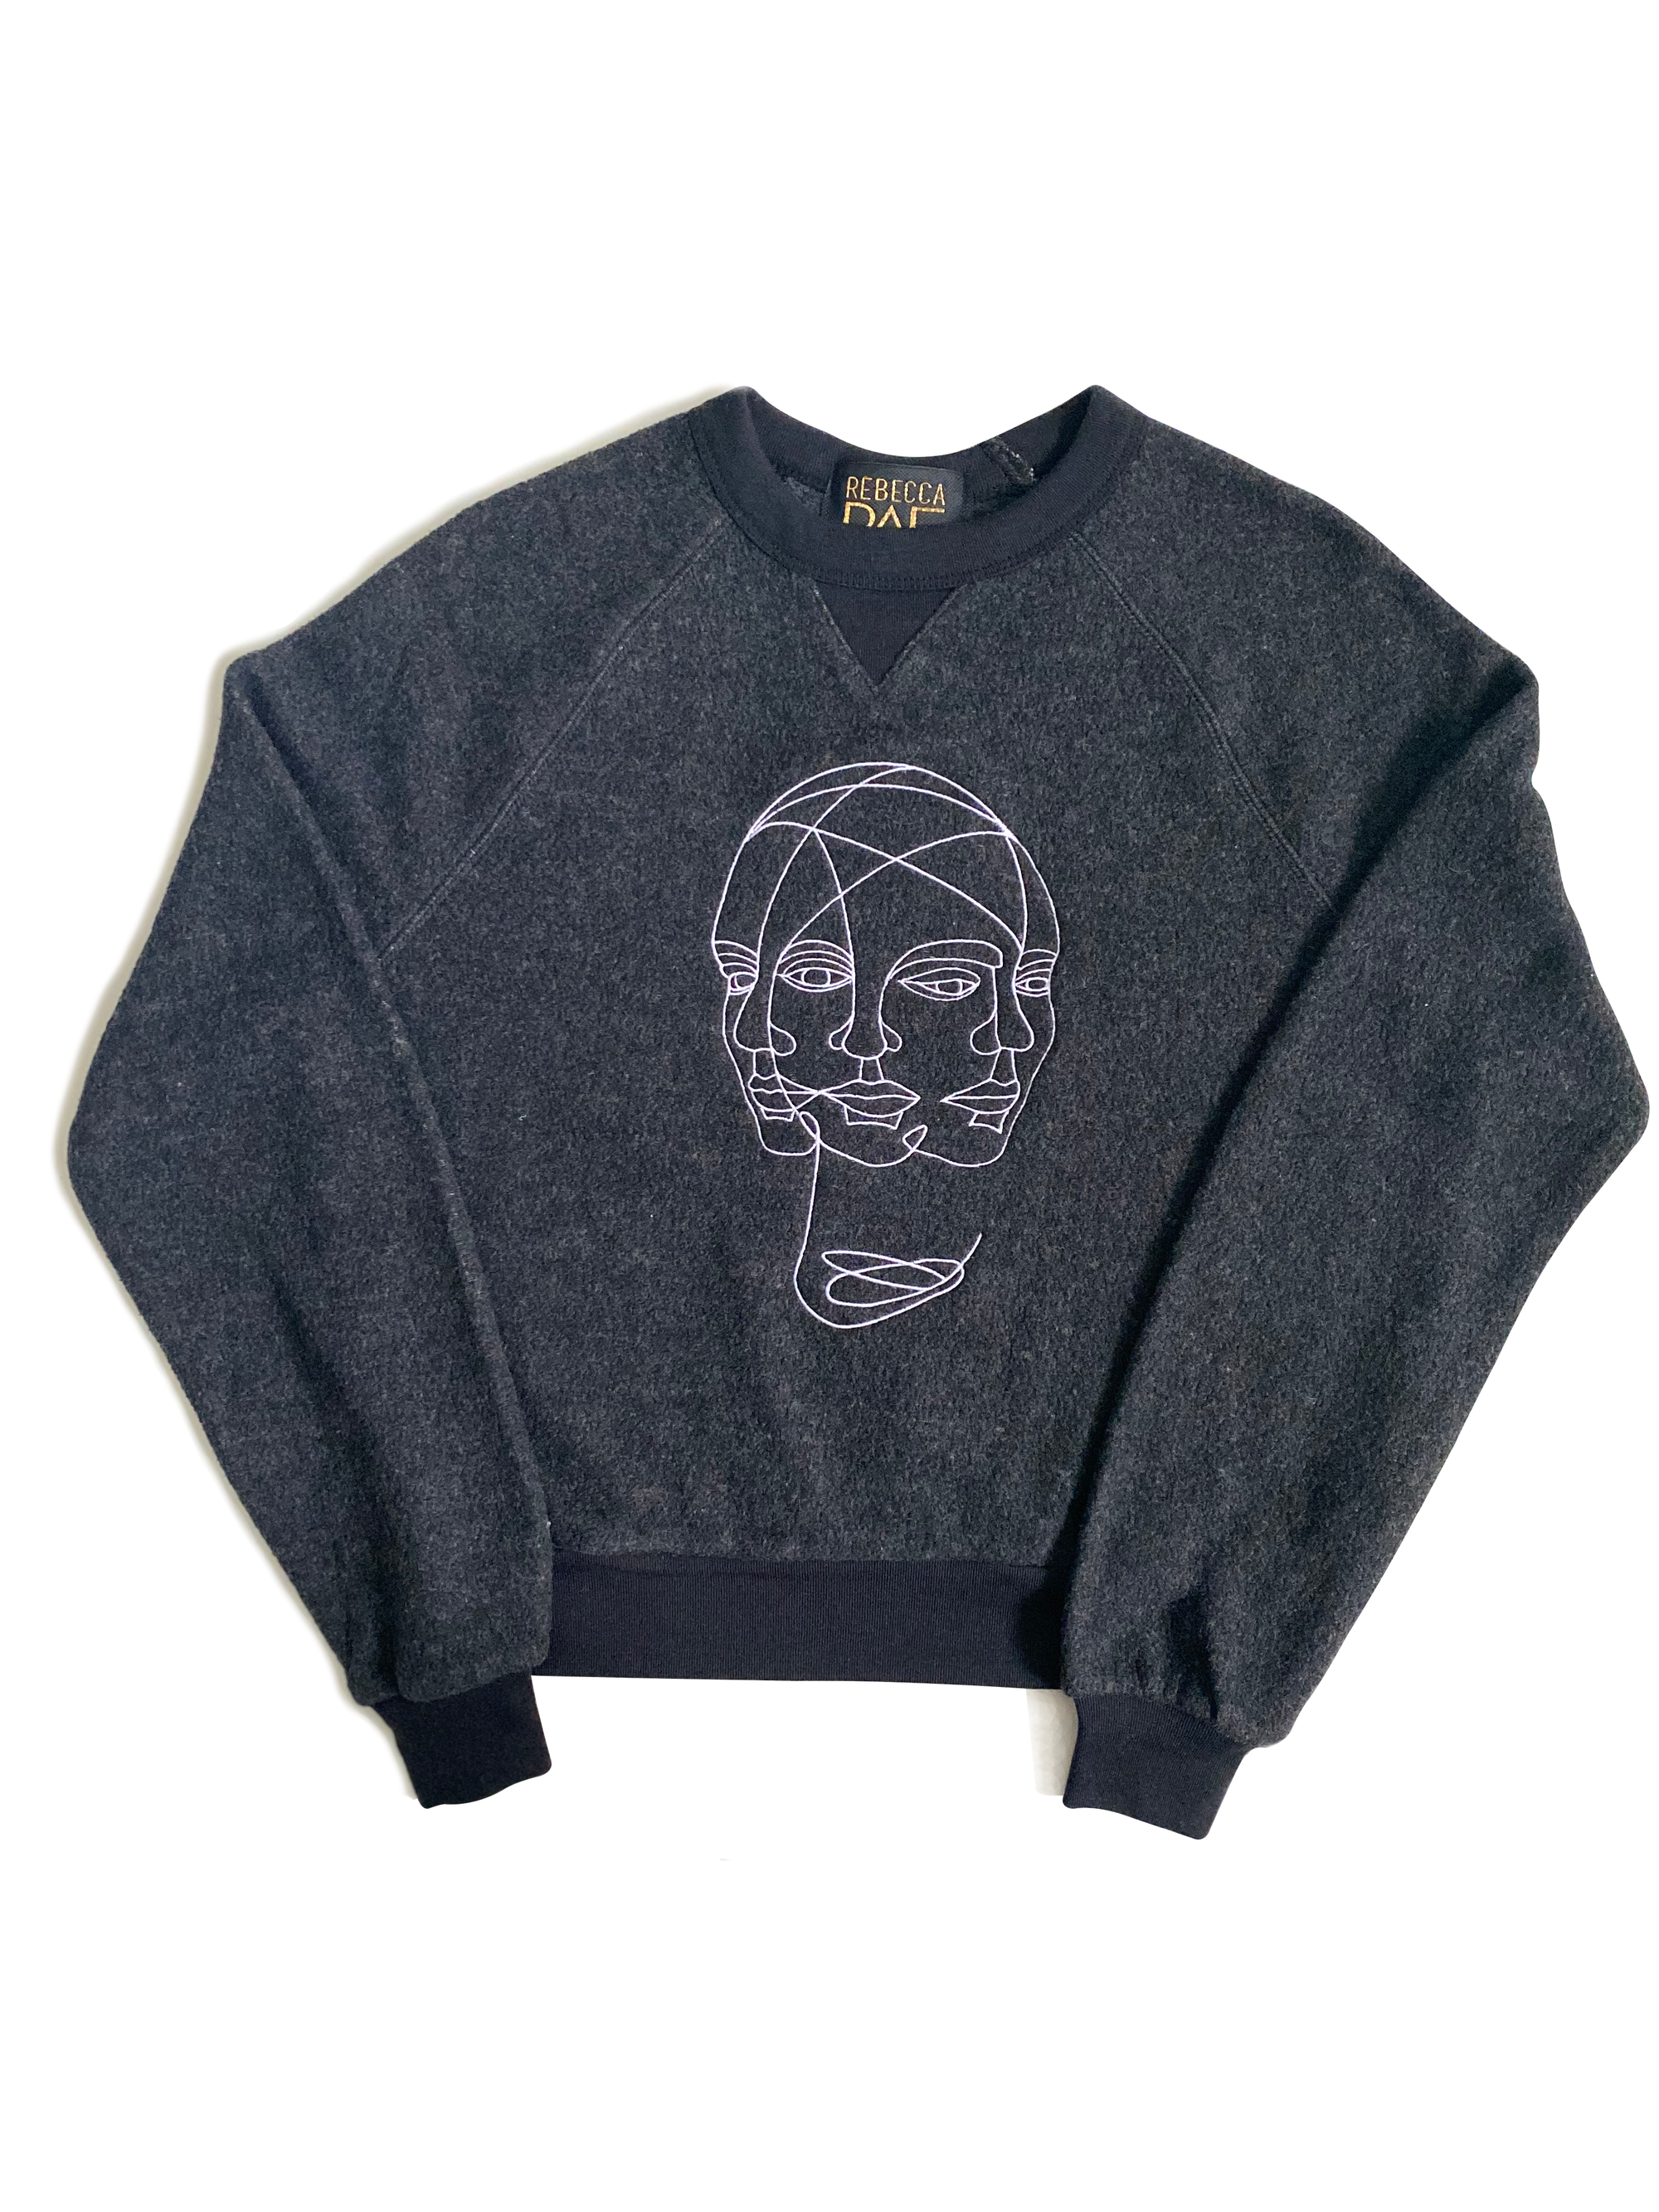 Mindfulness, Embroidered, Crewneck Crop Sweatshirt